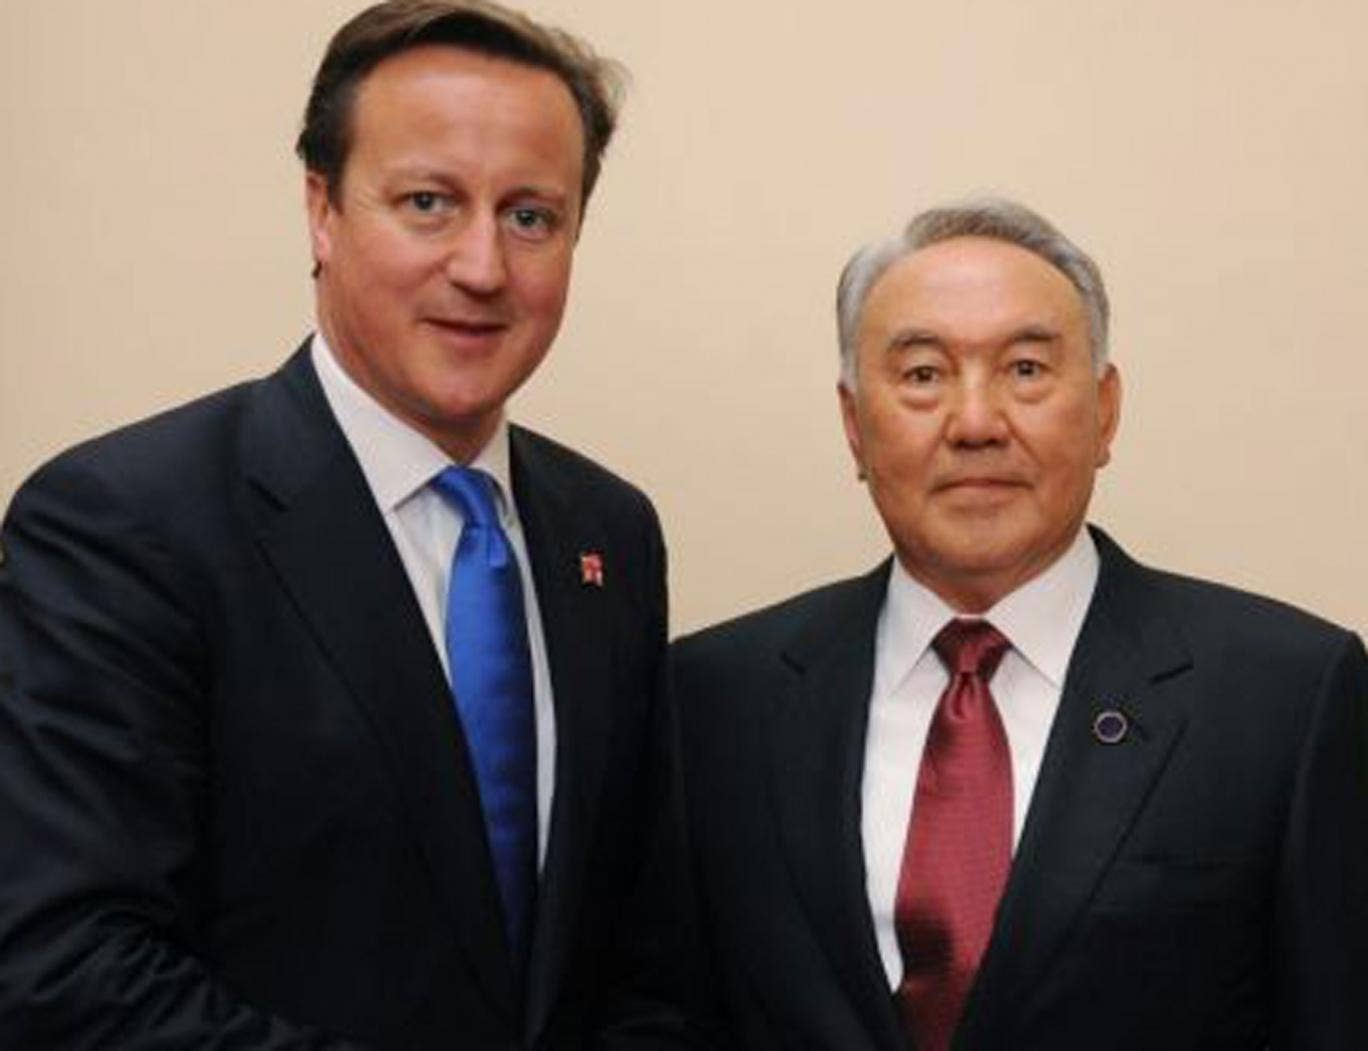 David Cameron with the President of Kazakhstan Nursultan Nazarbayev